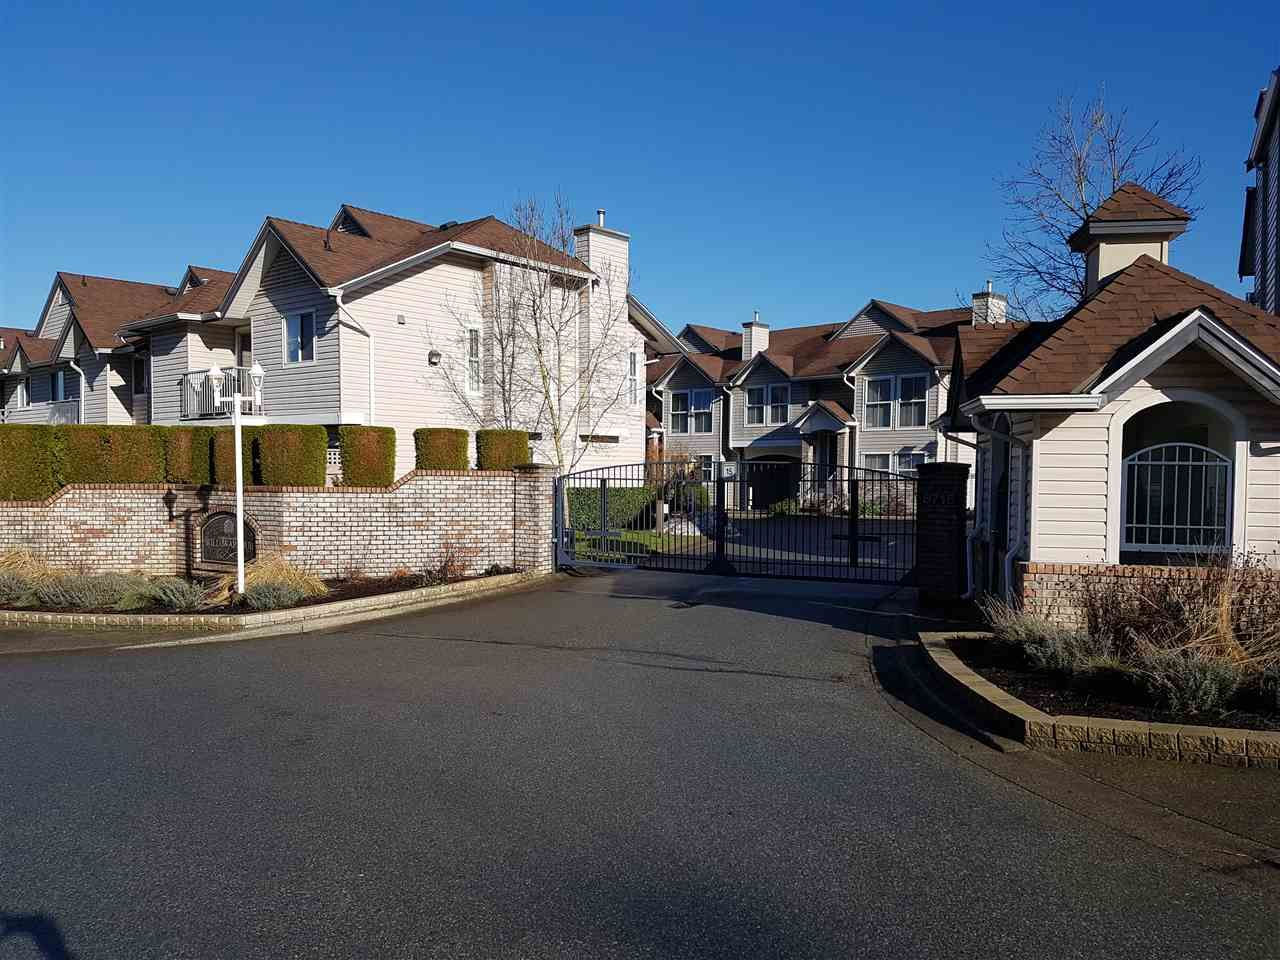 """Main Photo: 81 8716 WALNUT GROVE Drive in Langley: Walnut Grove Townhouse for sale in """"willow arbour"""" : MLS®# R2132645"""